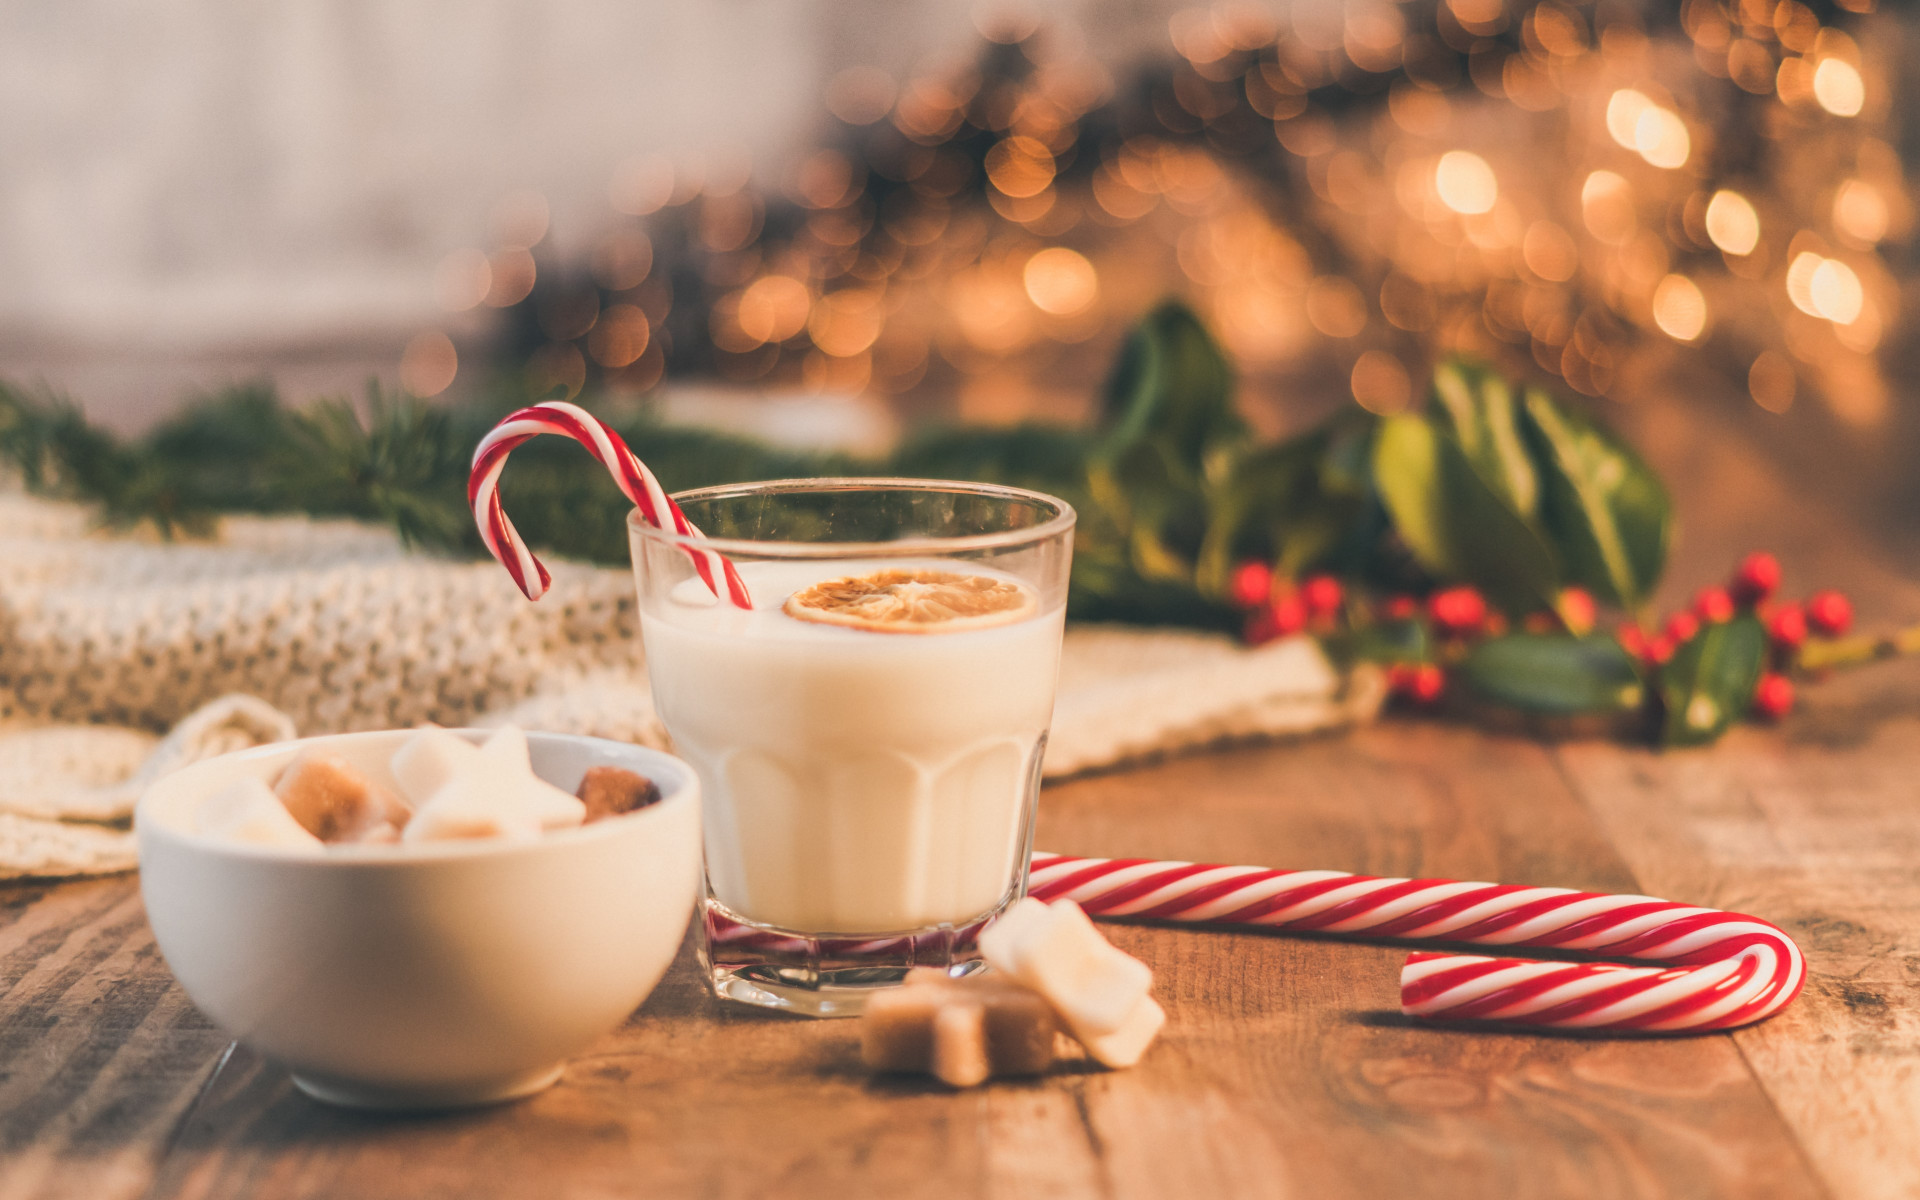 Seasonal Christmas sweets and cup of milk wallpaper 1920x1200